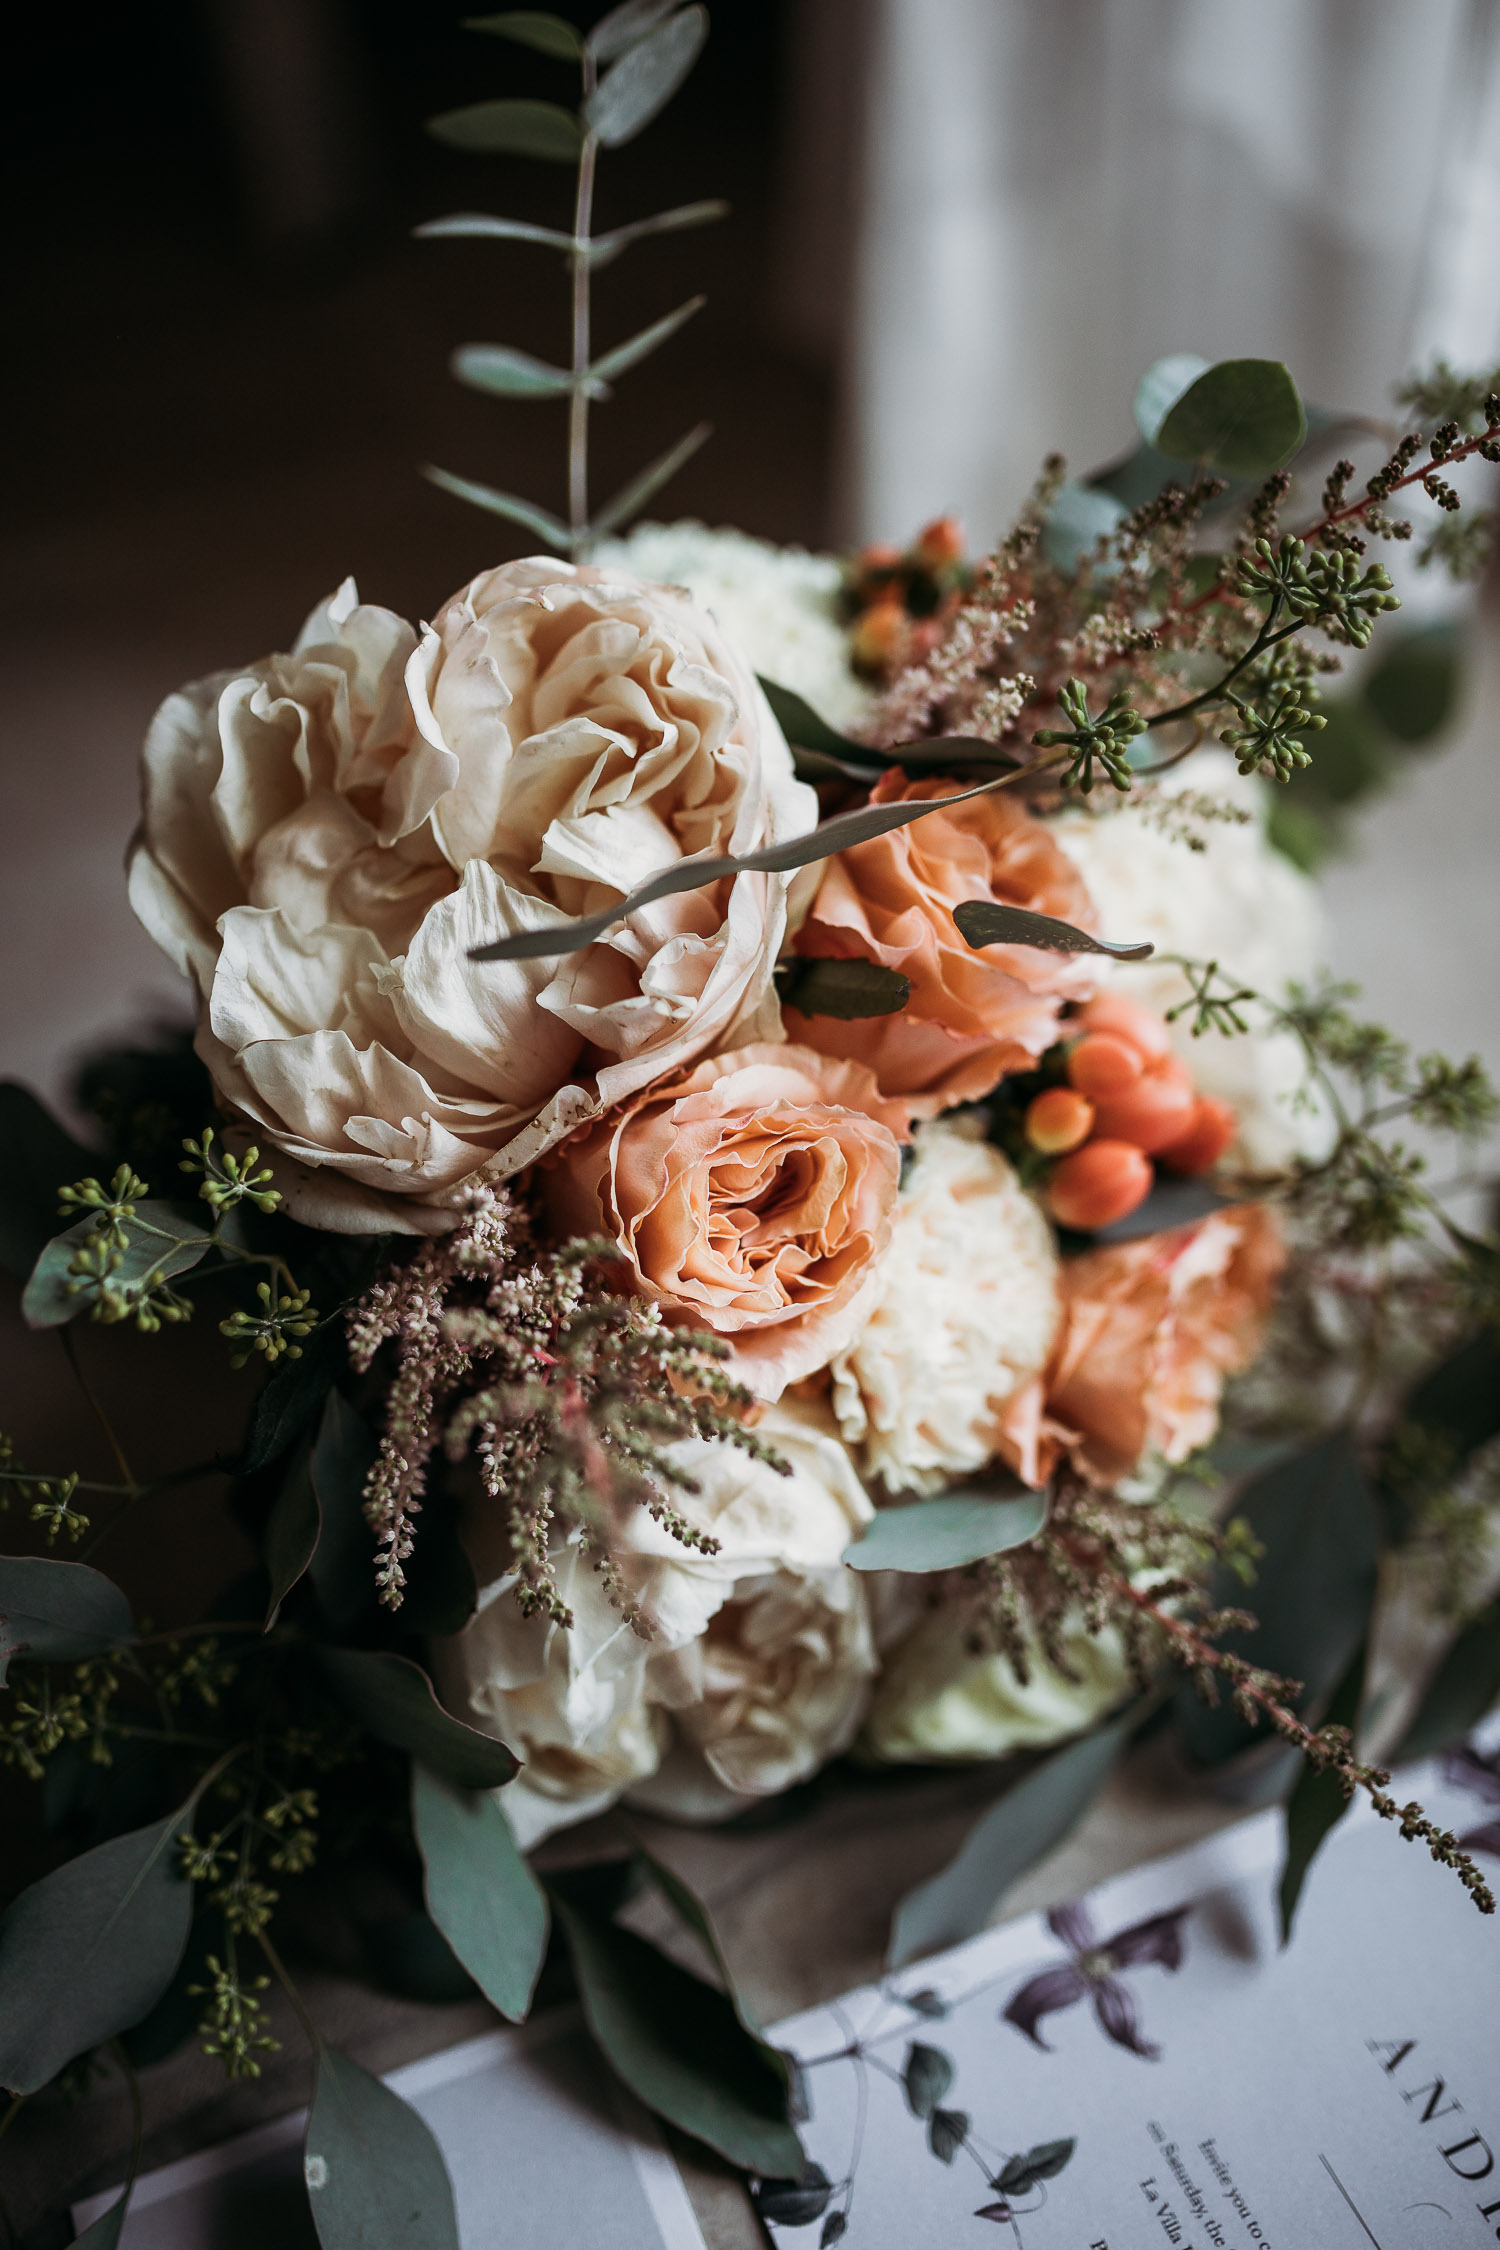 Bride bouquet with avory and peach peonies and berries at La Villa Hotel Mombaruzzo